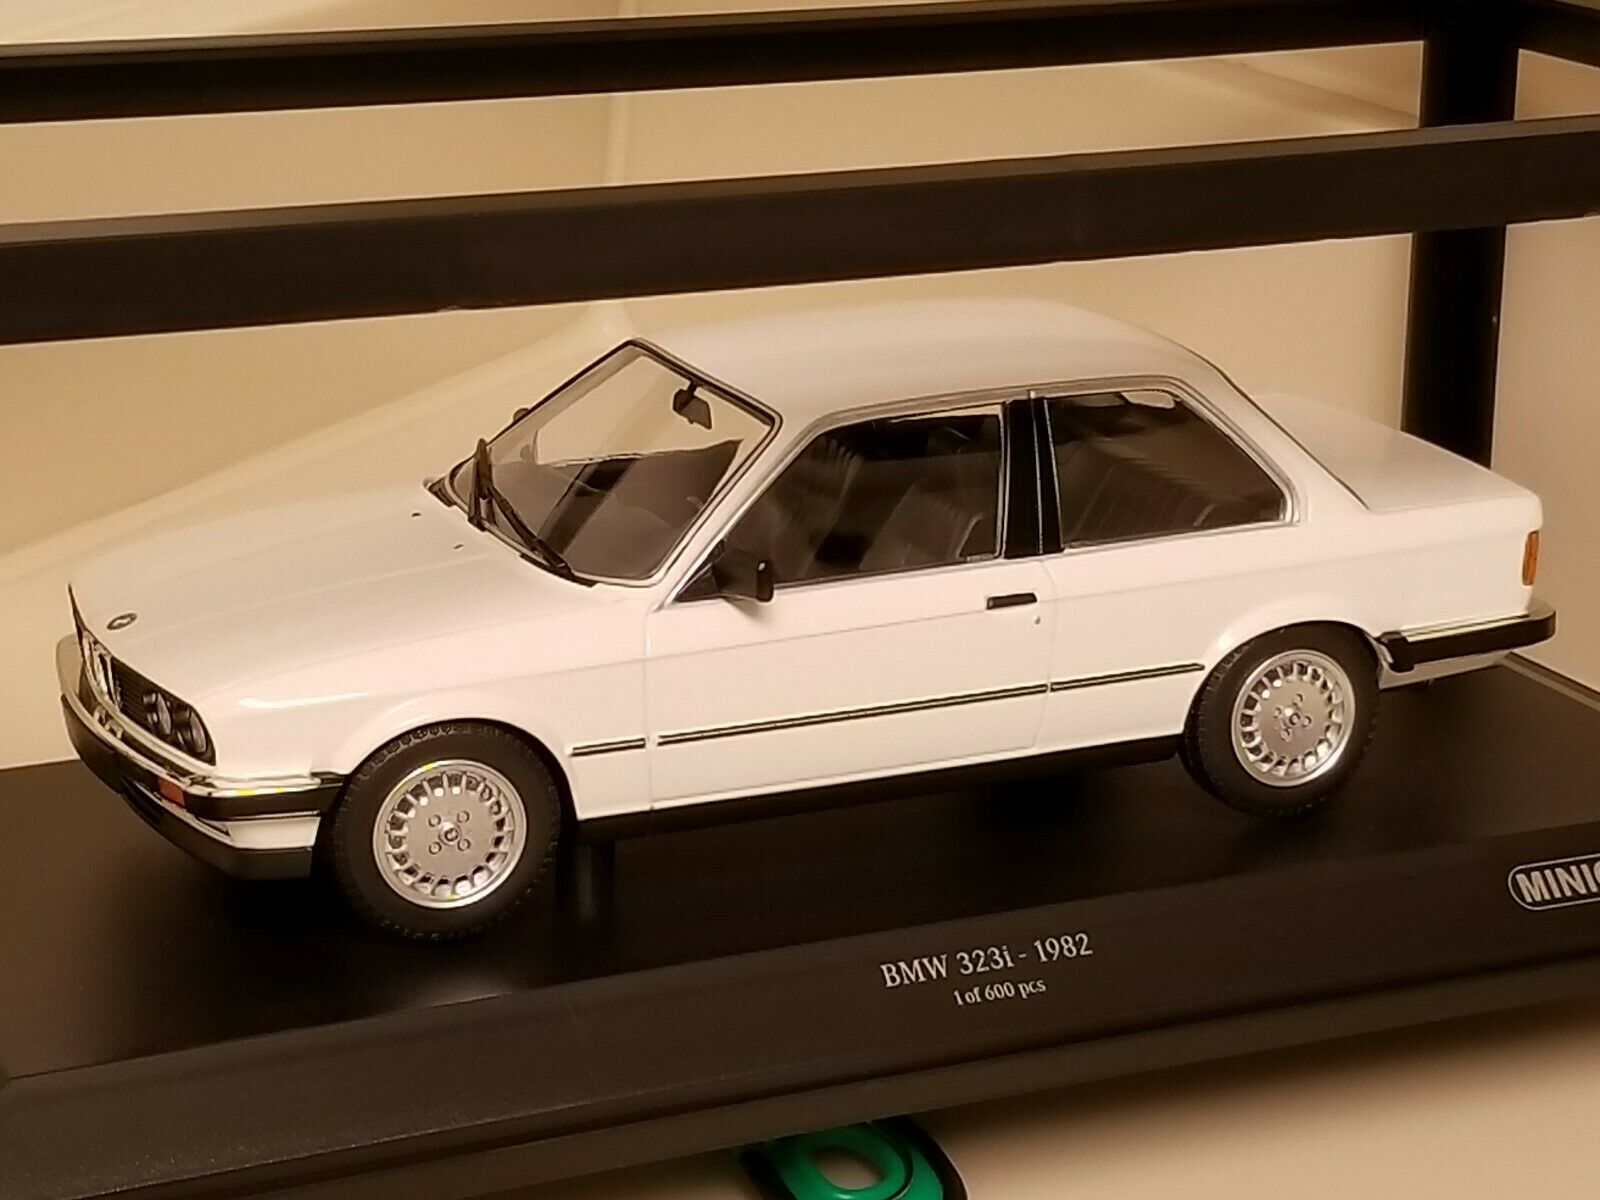 Minichamps 1982 BMW 323i WHITE 1 18 NEW NEW NEW 155 026005 1 18 Limited 1 of 600 7fe5ef